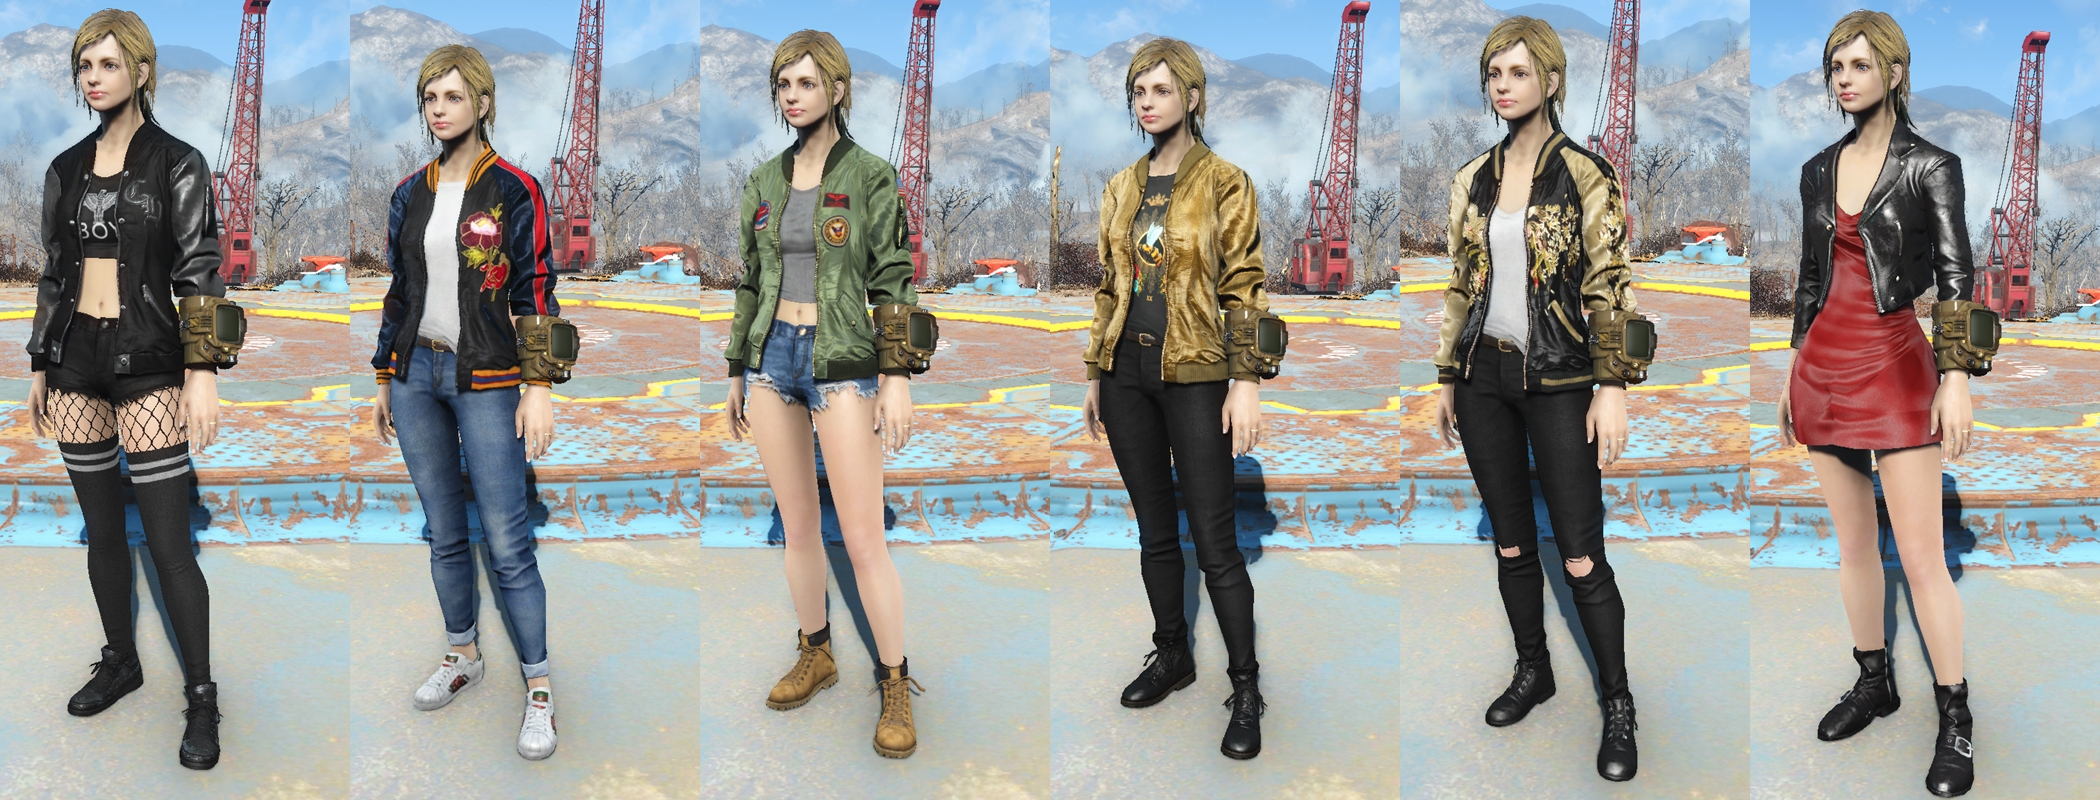 K-Girl outfits at Fallout 4 Nexus - Mods and community